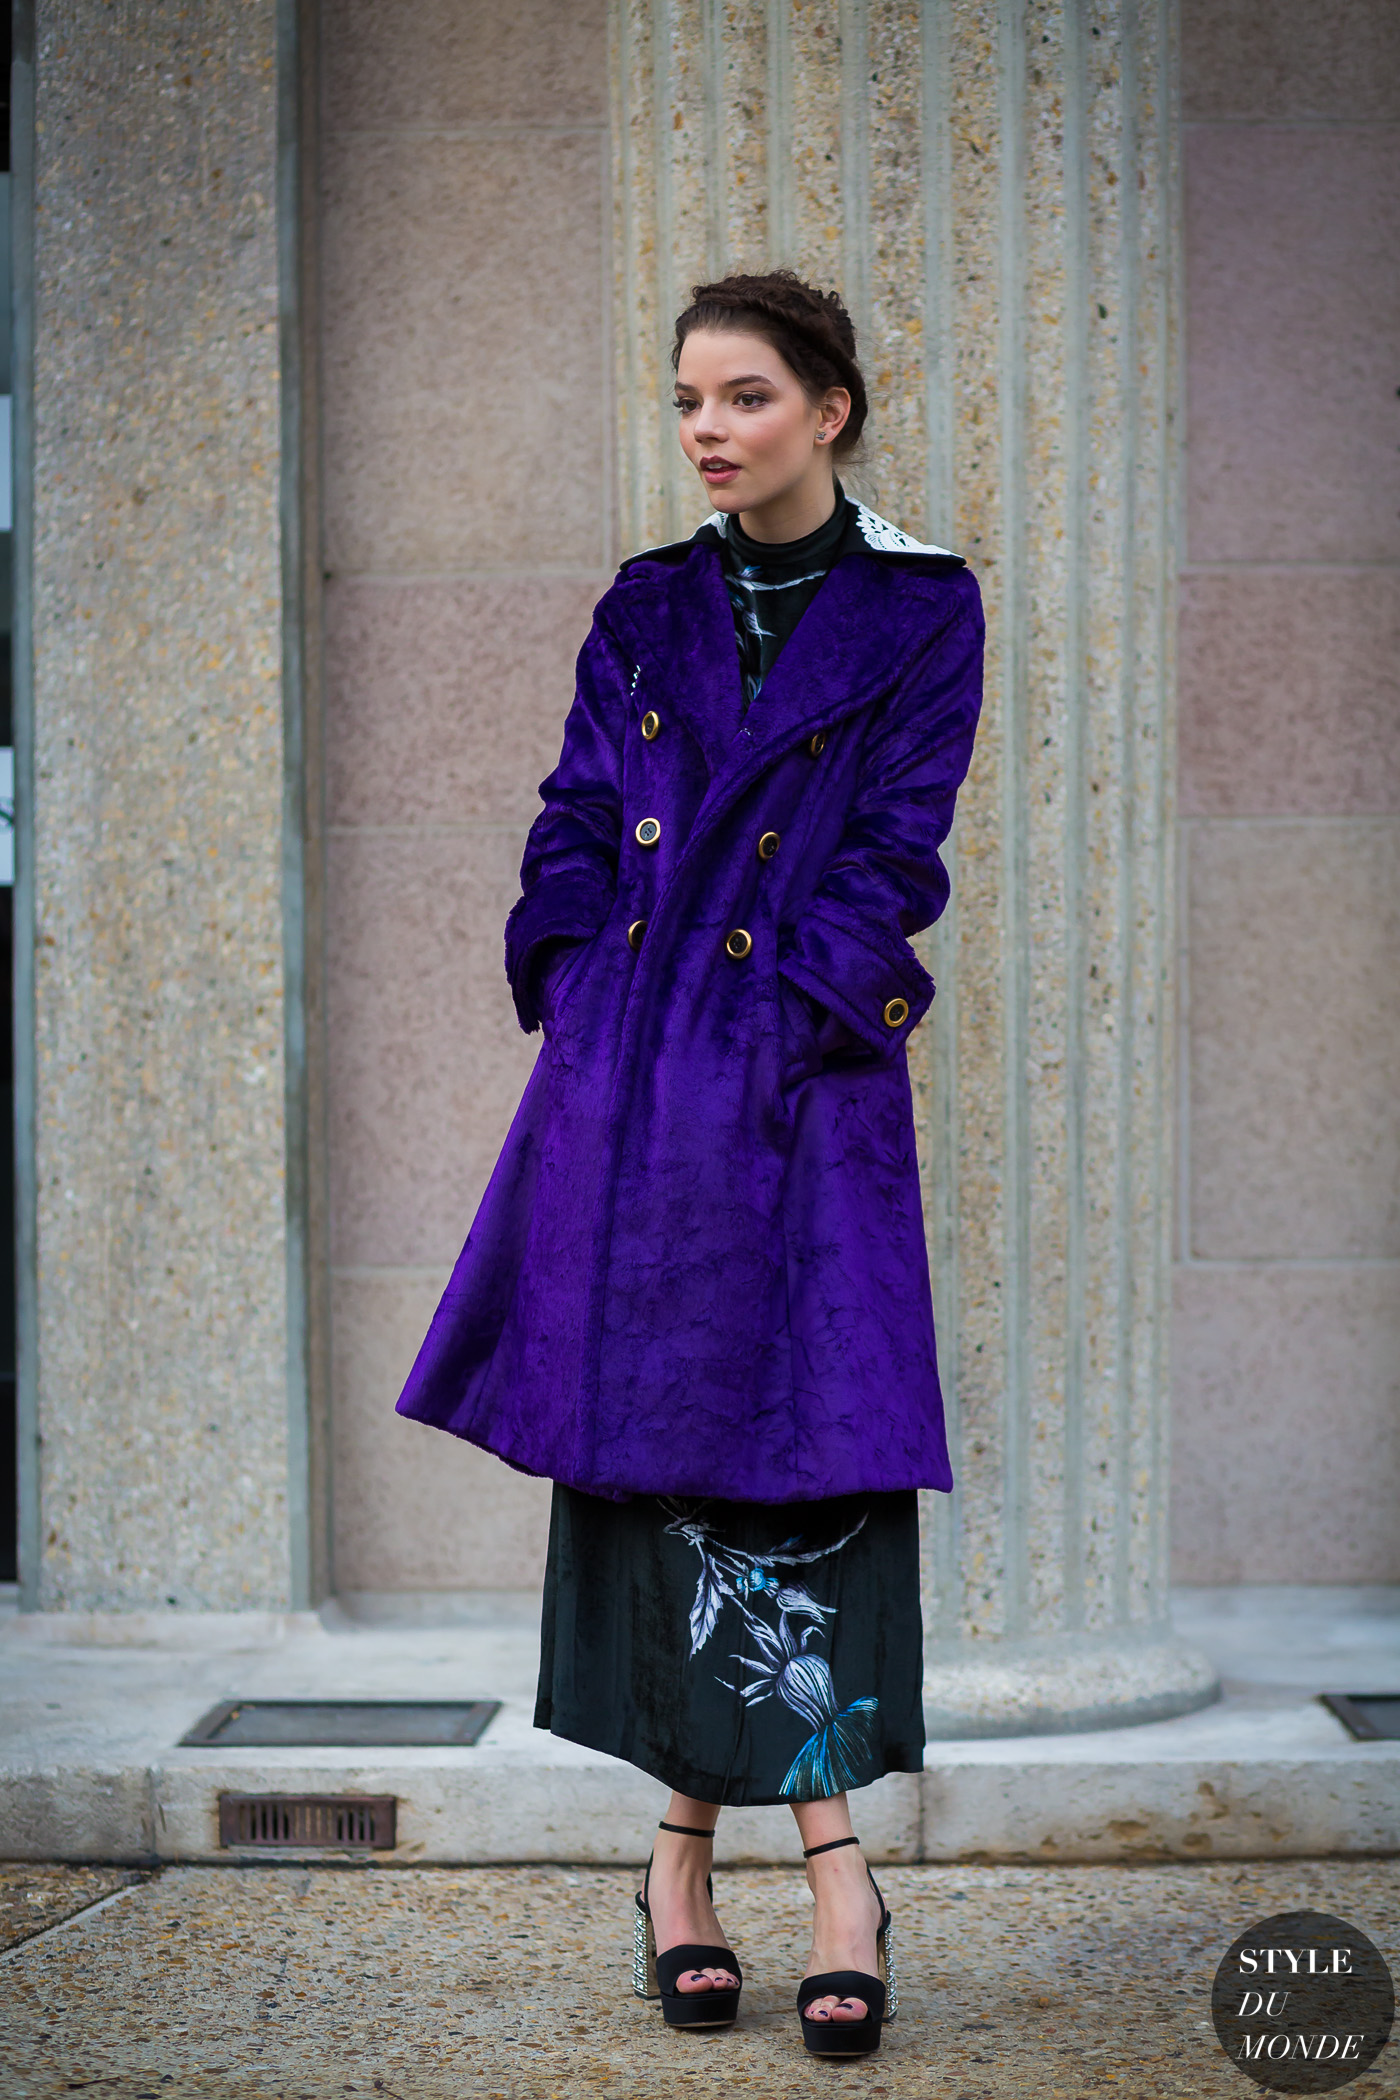 Anya Taylor-Joy Street Style Street Fashion Streetsnaps by STYLEDUMONDE Street Style Fashion Photography